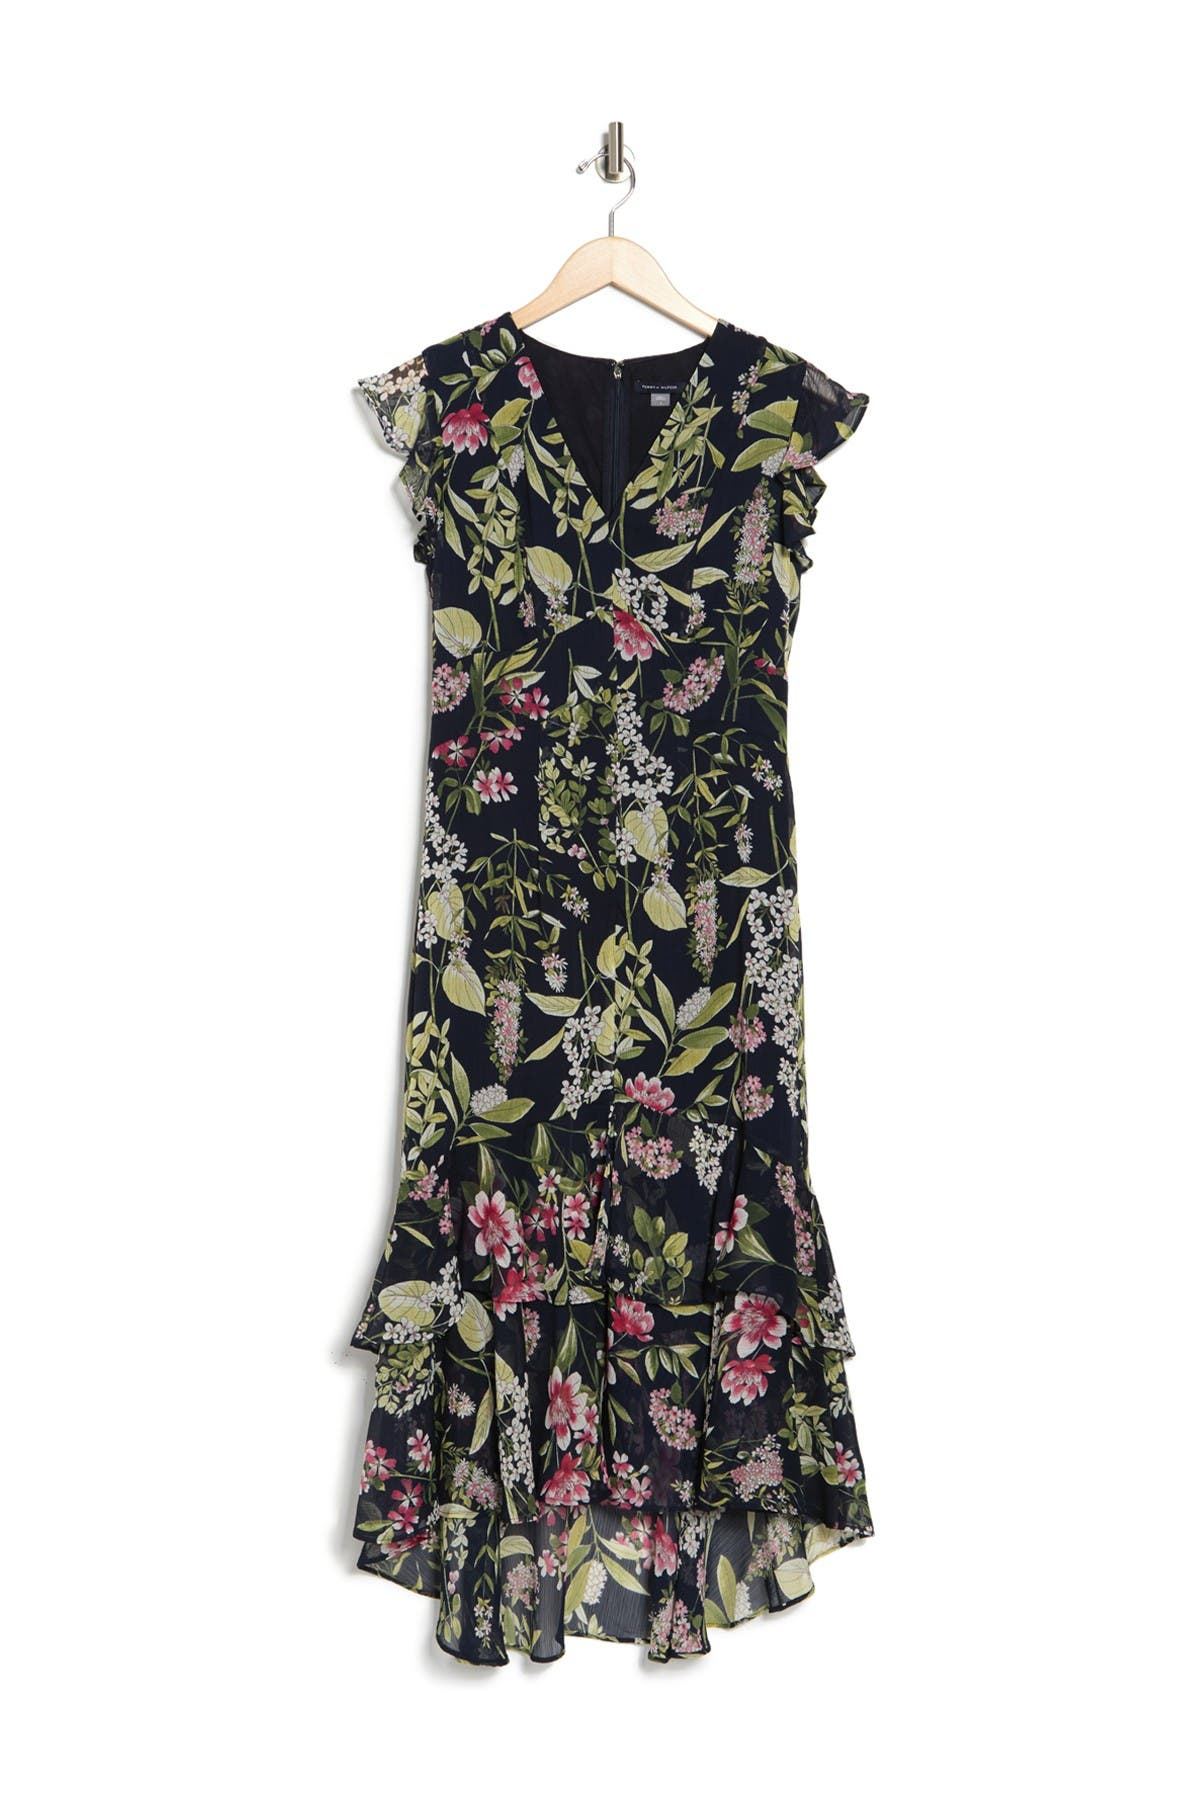 Image of Tommy Hilfiger Floral Ruffled Chiffon High/Low Dress